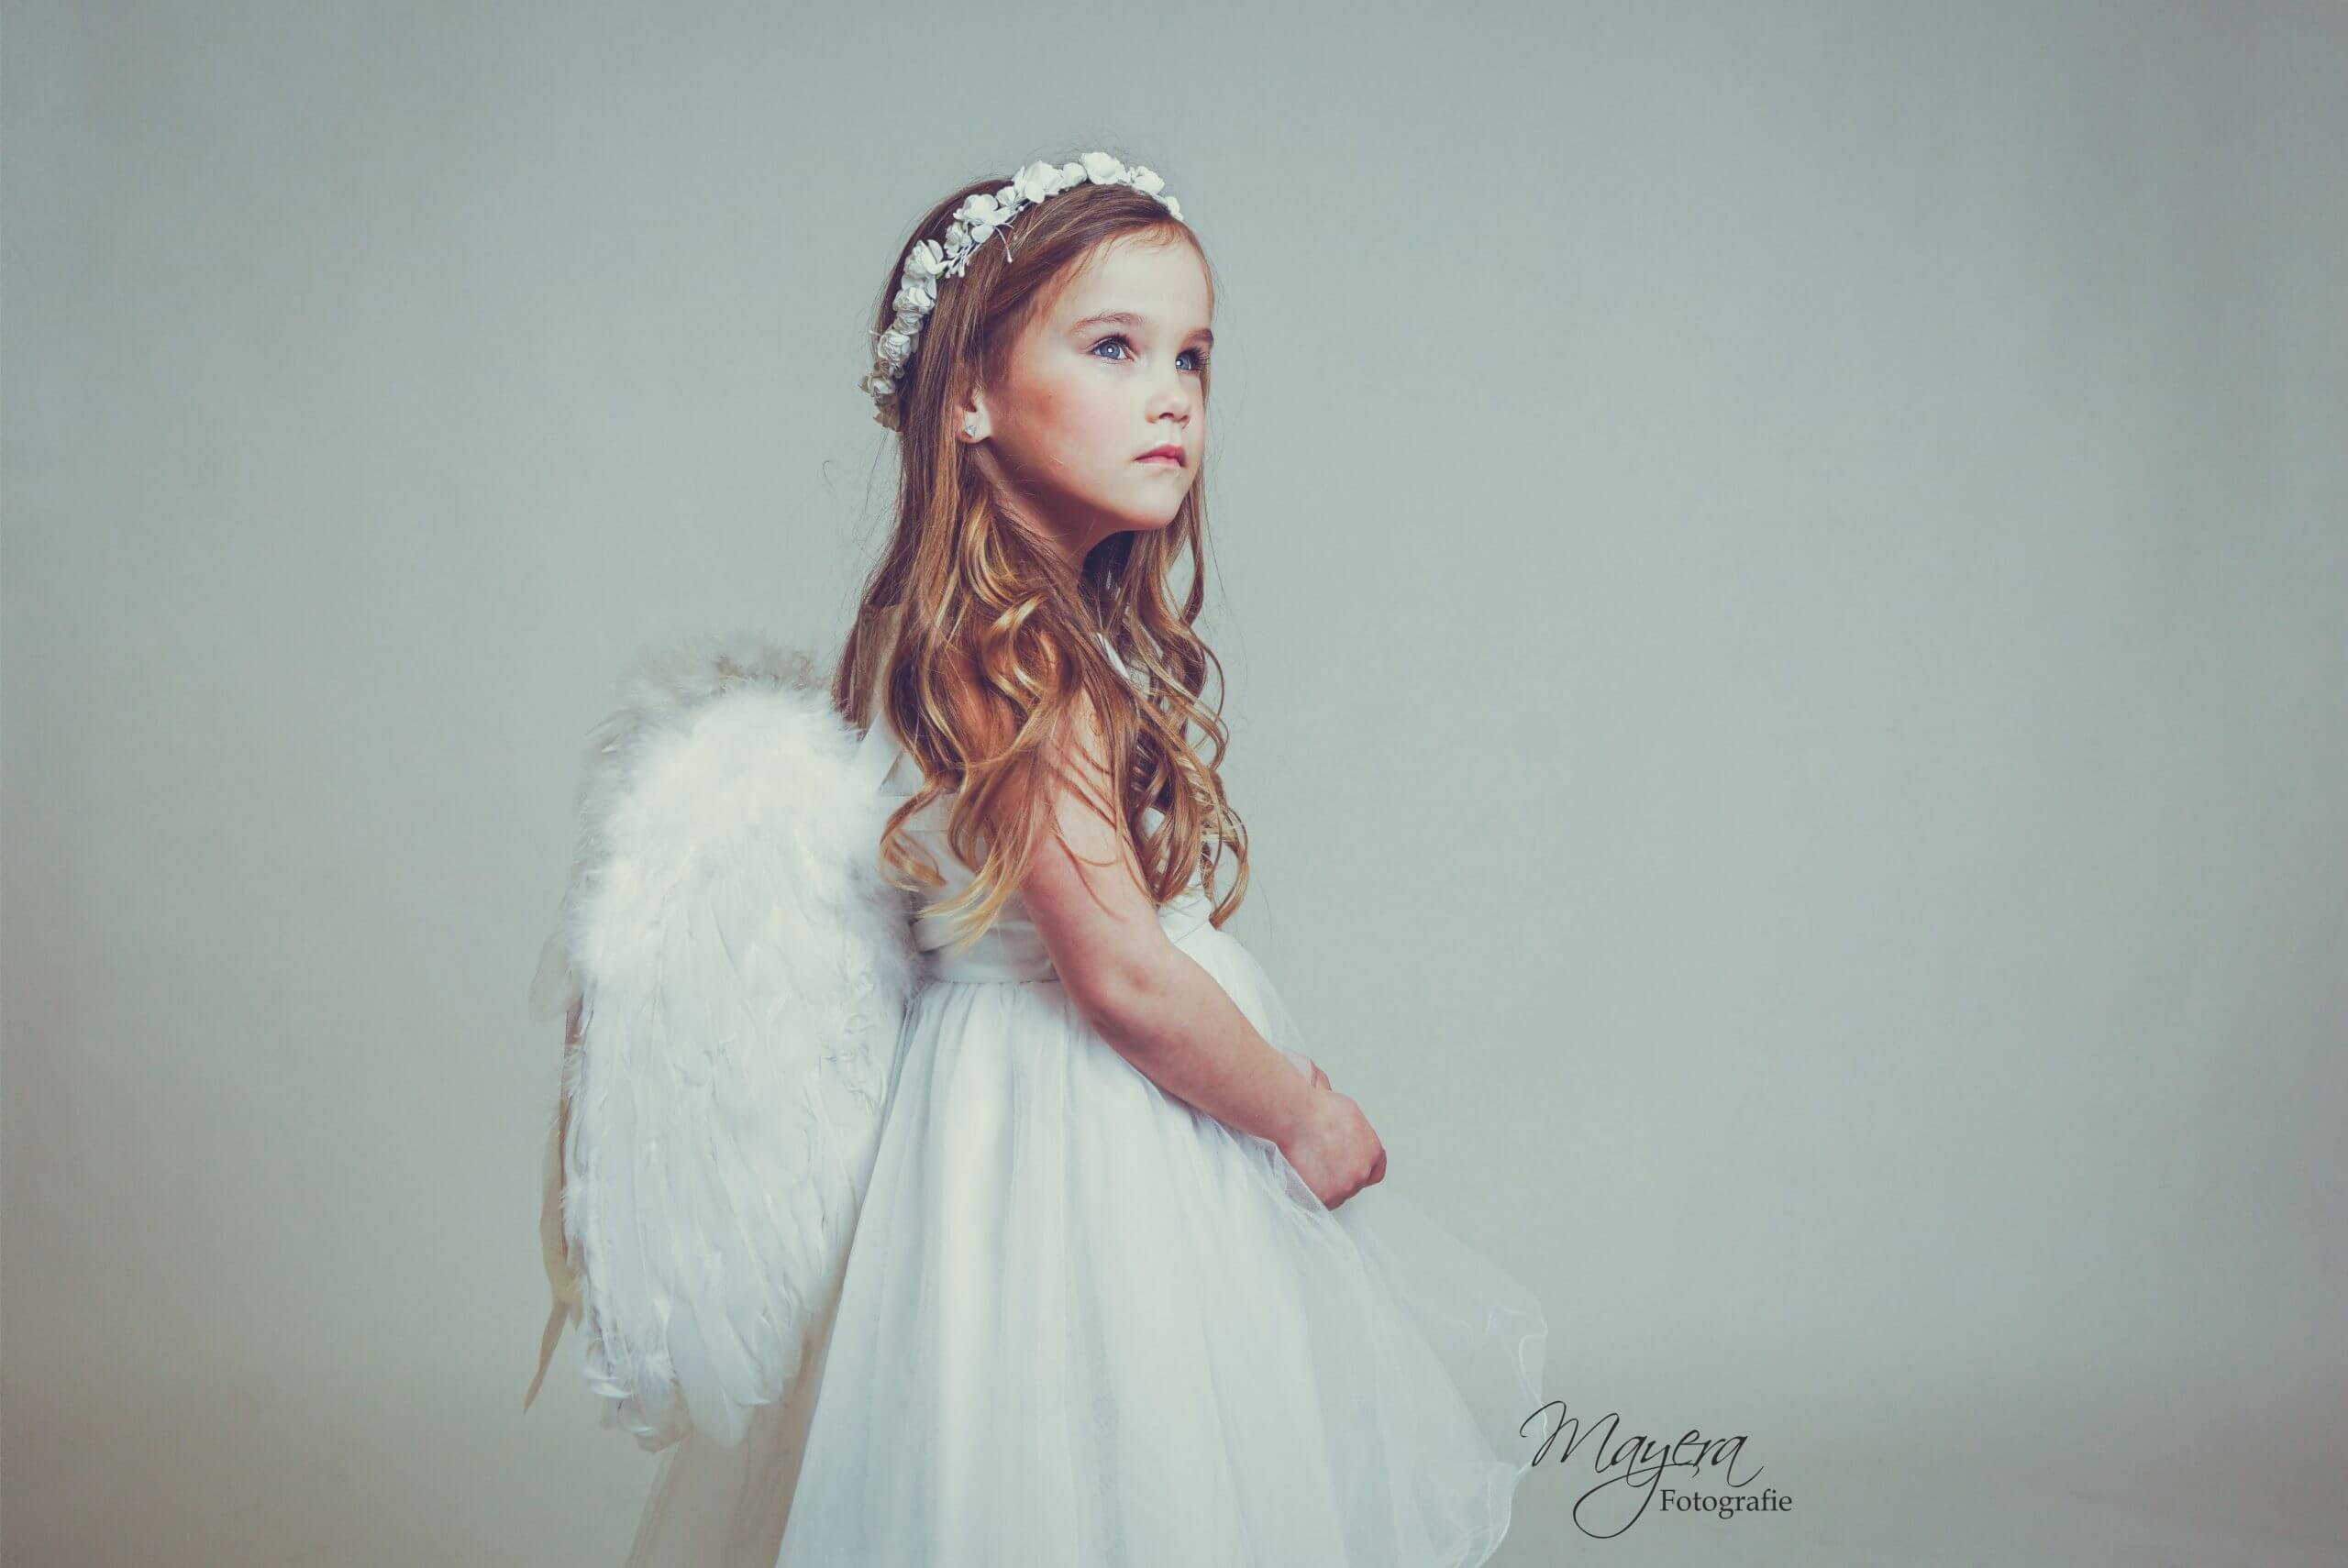 engel-angel-meisje-studio-fotografie-scaled